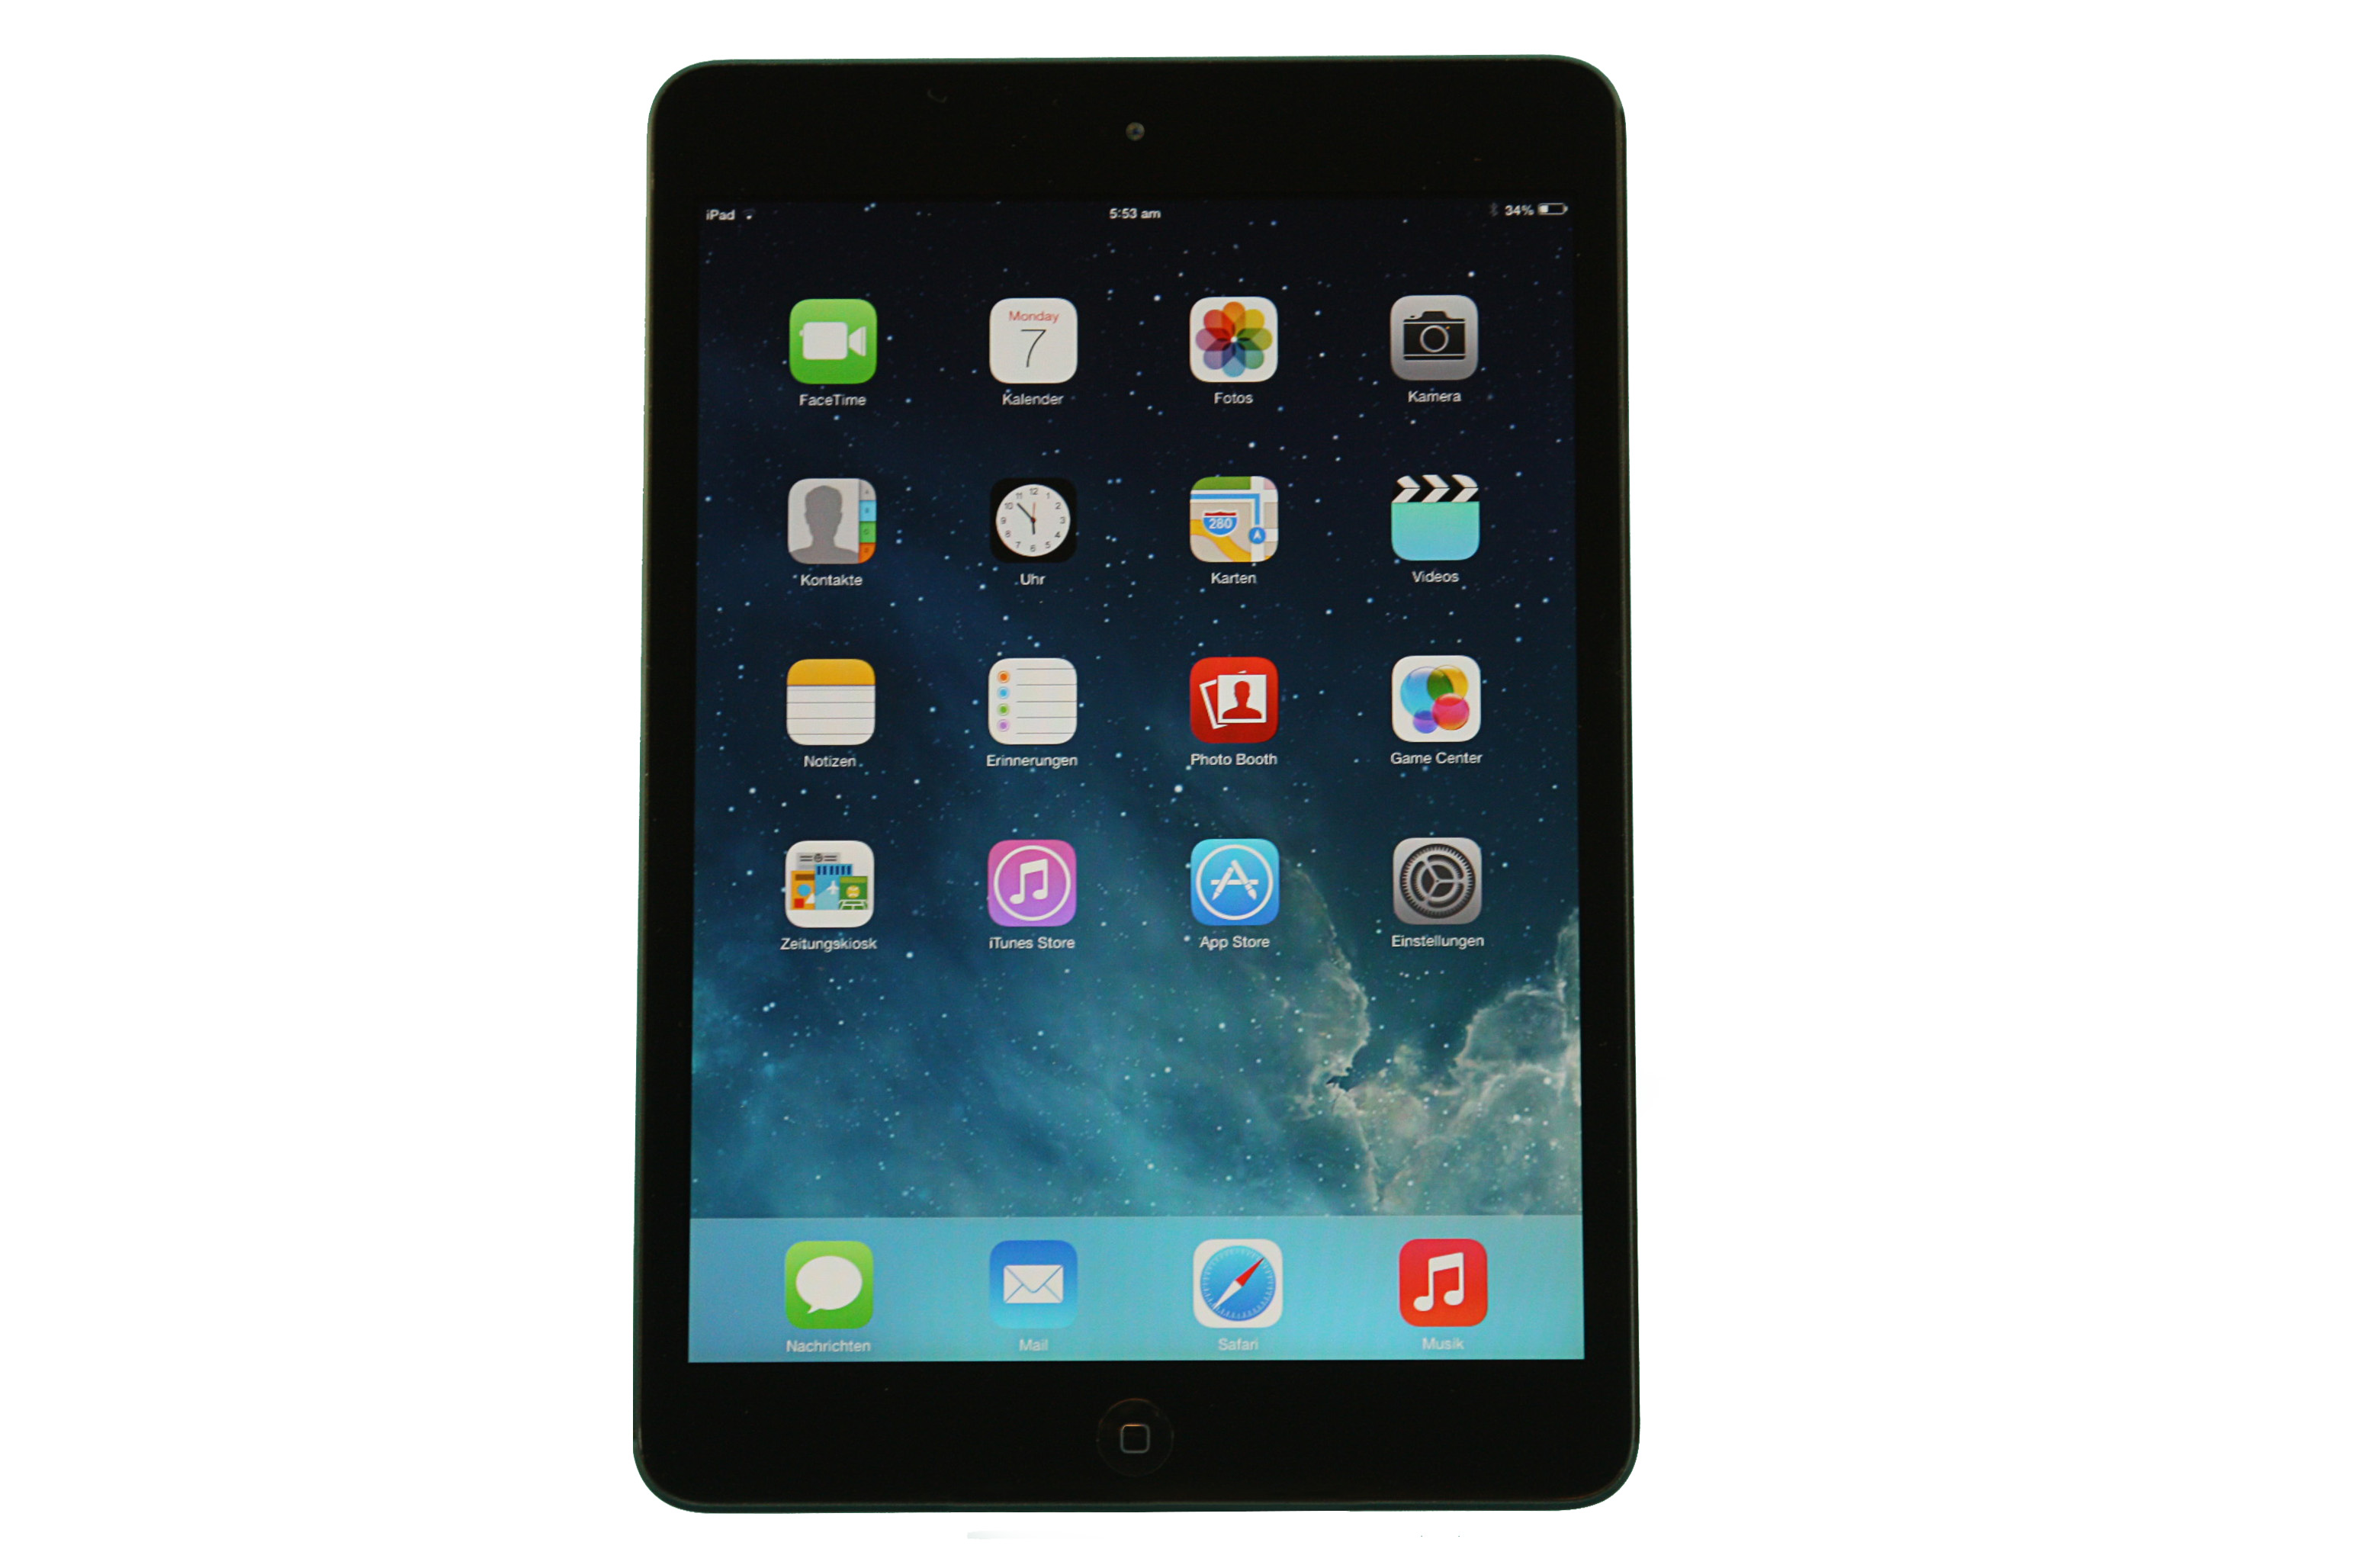 apple ipad mini 1 wi fi 32gb schwarz 7 9 gebraucht. Black Bedroom Furniture Sets. Home Design Ideas